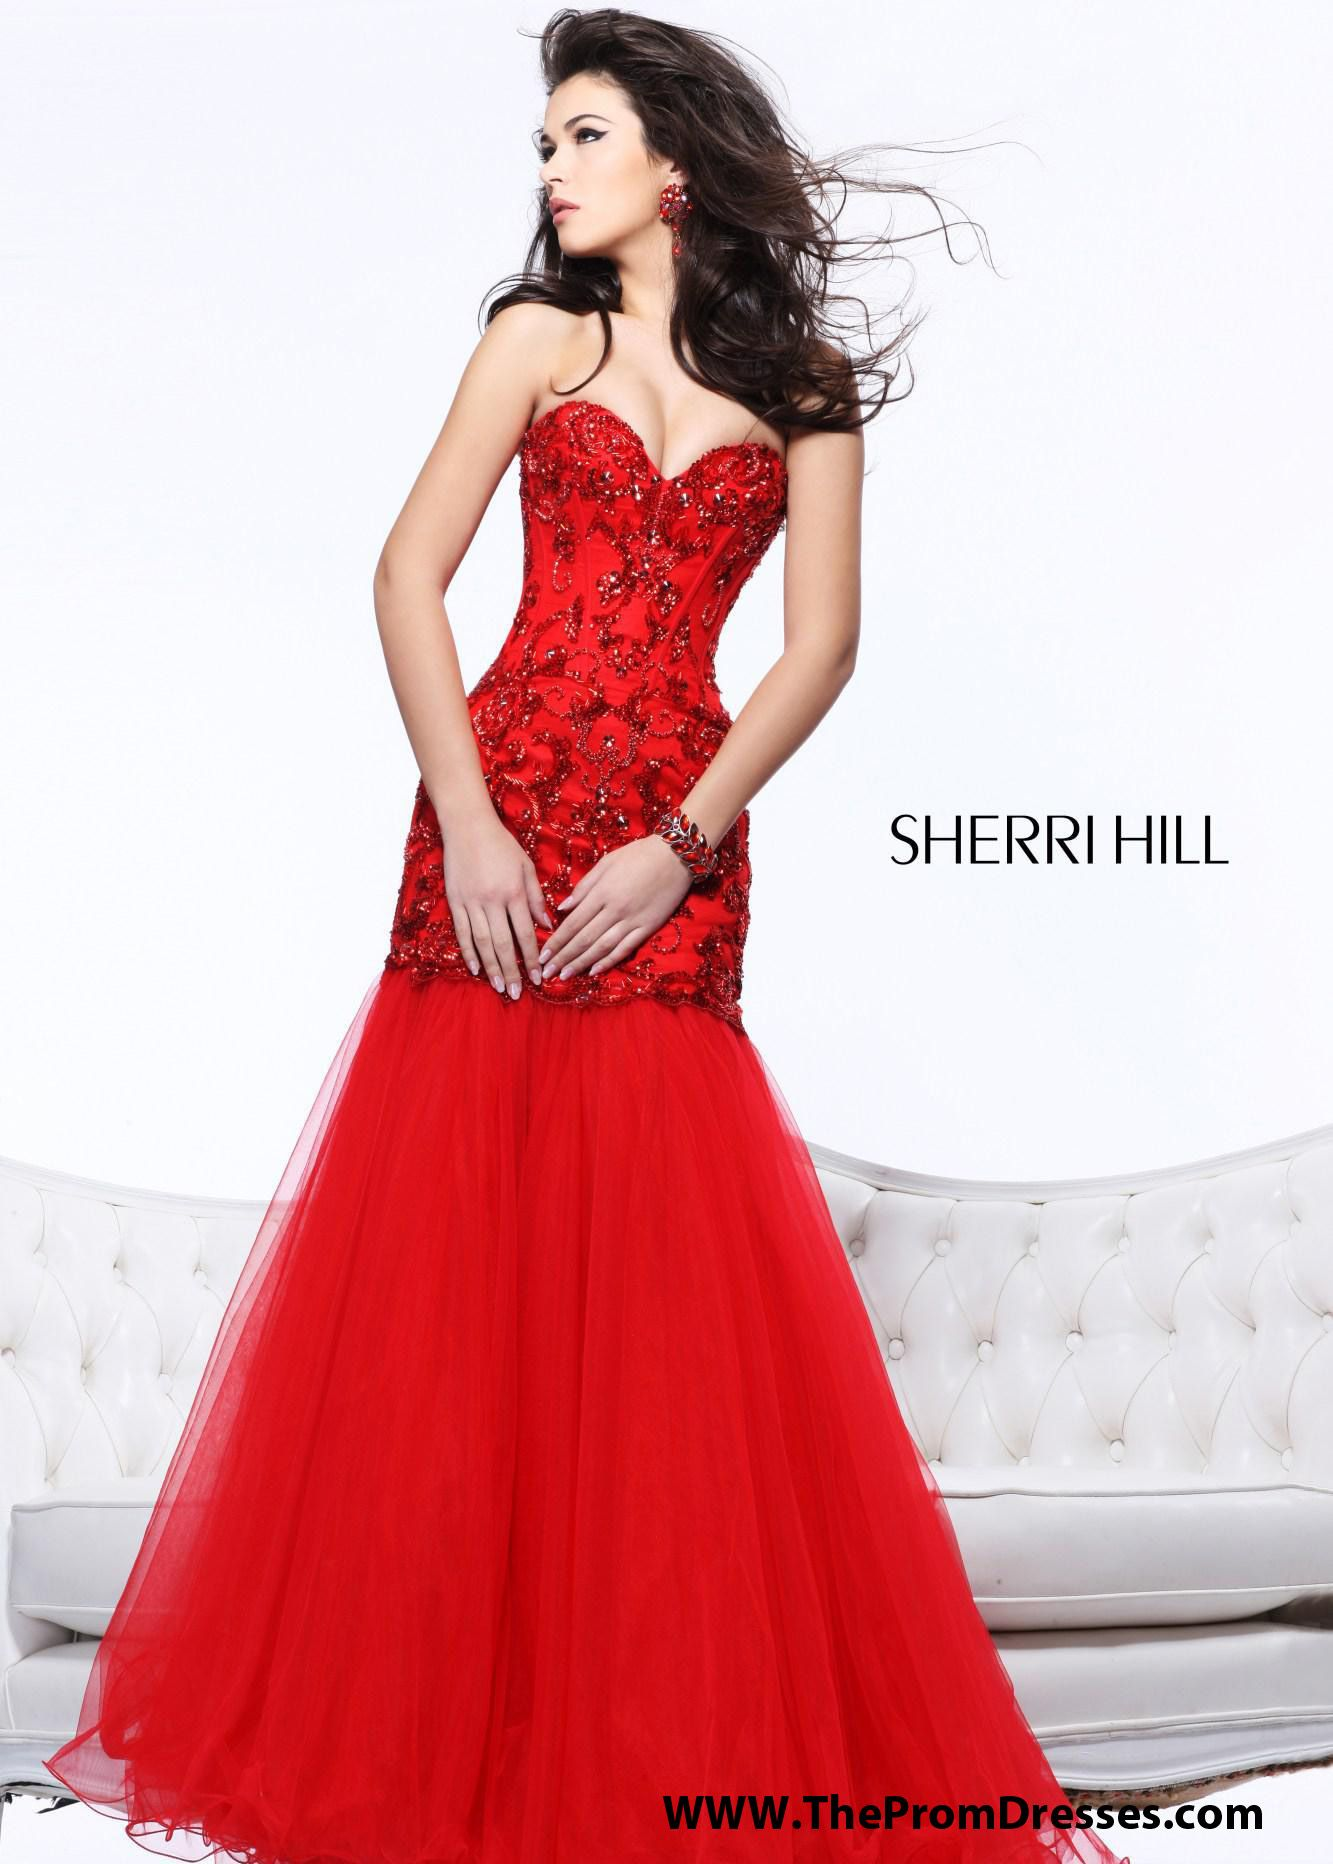 Sherri Hill Red Evening Gown with removable skirt Pageants